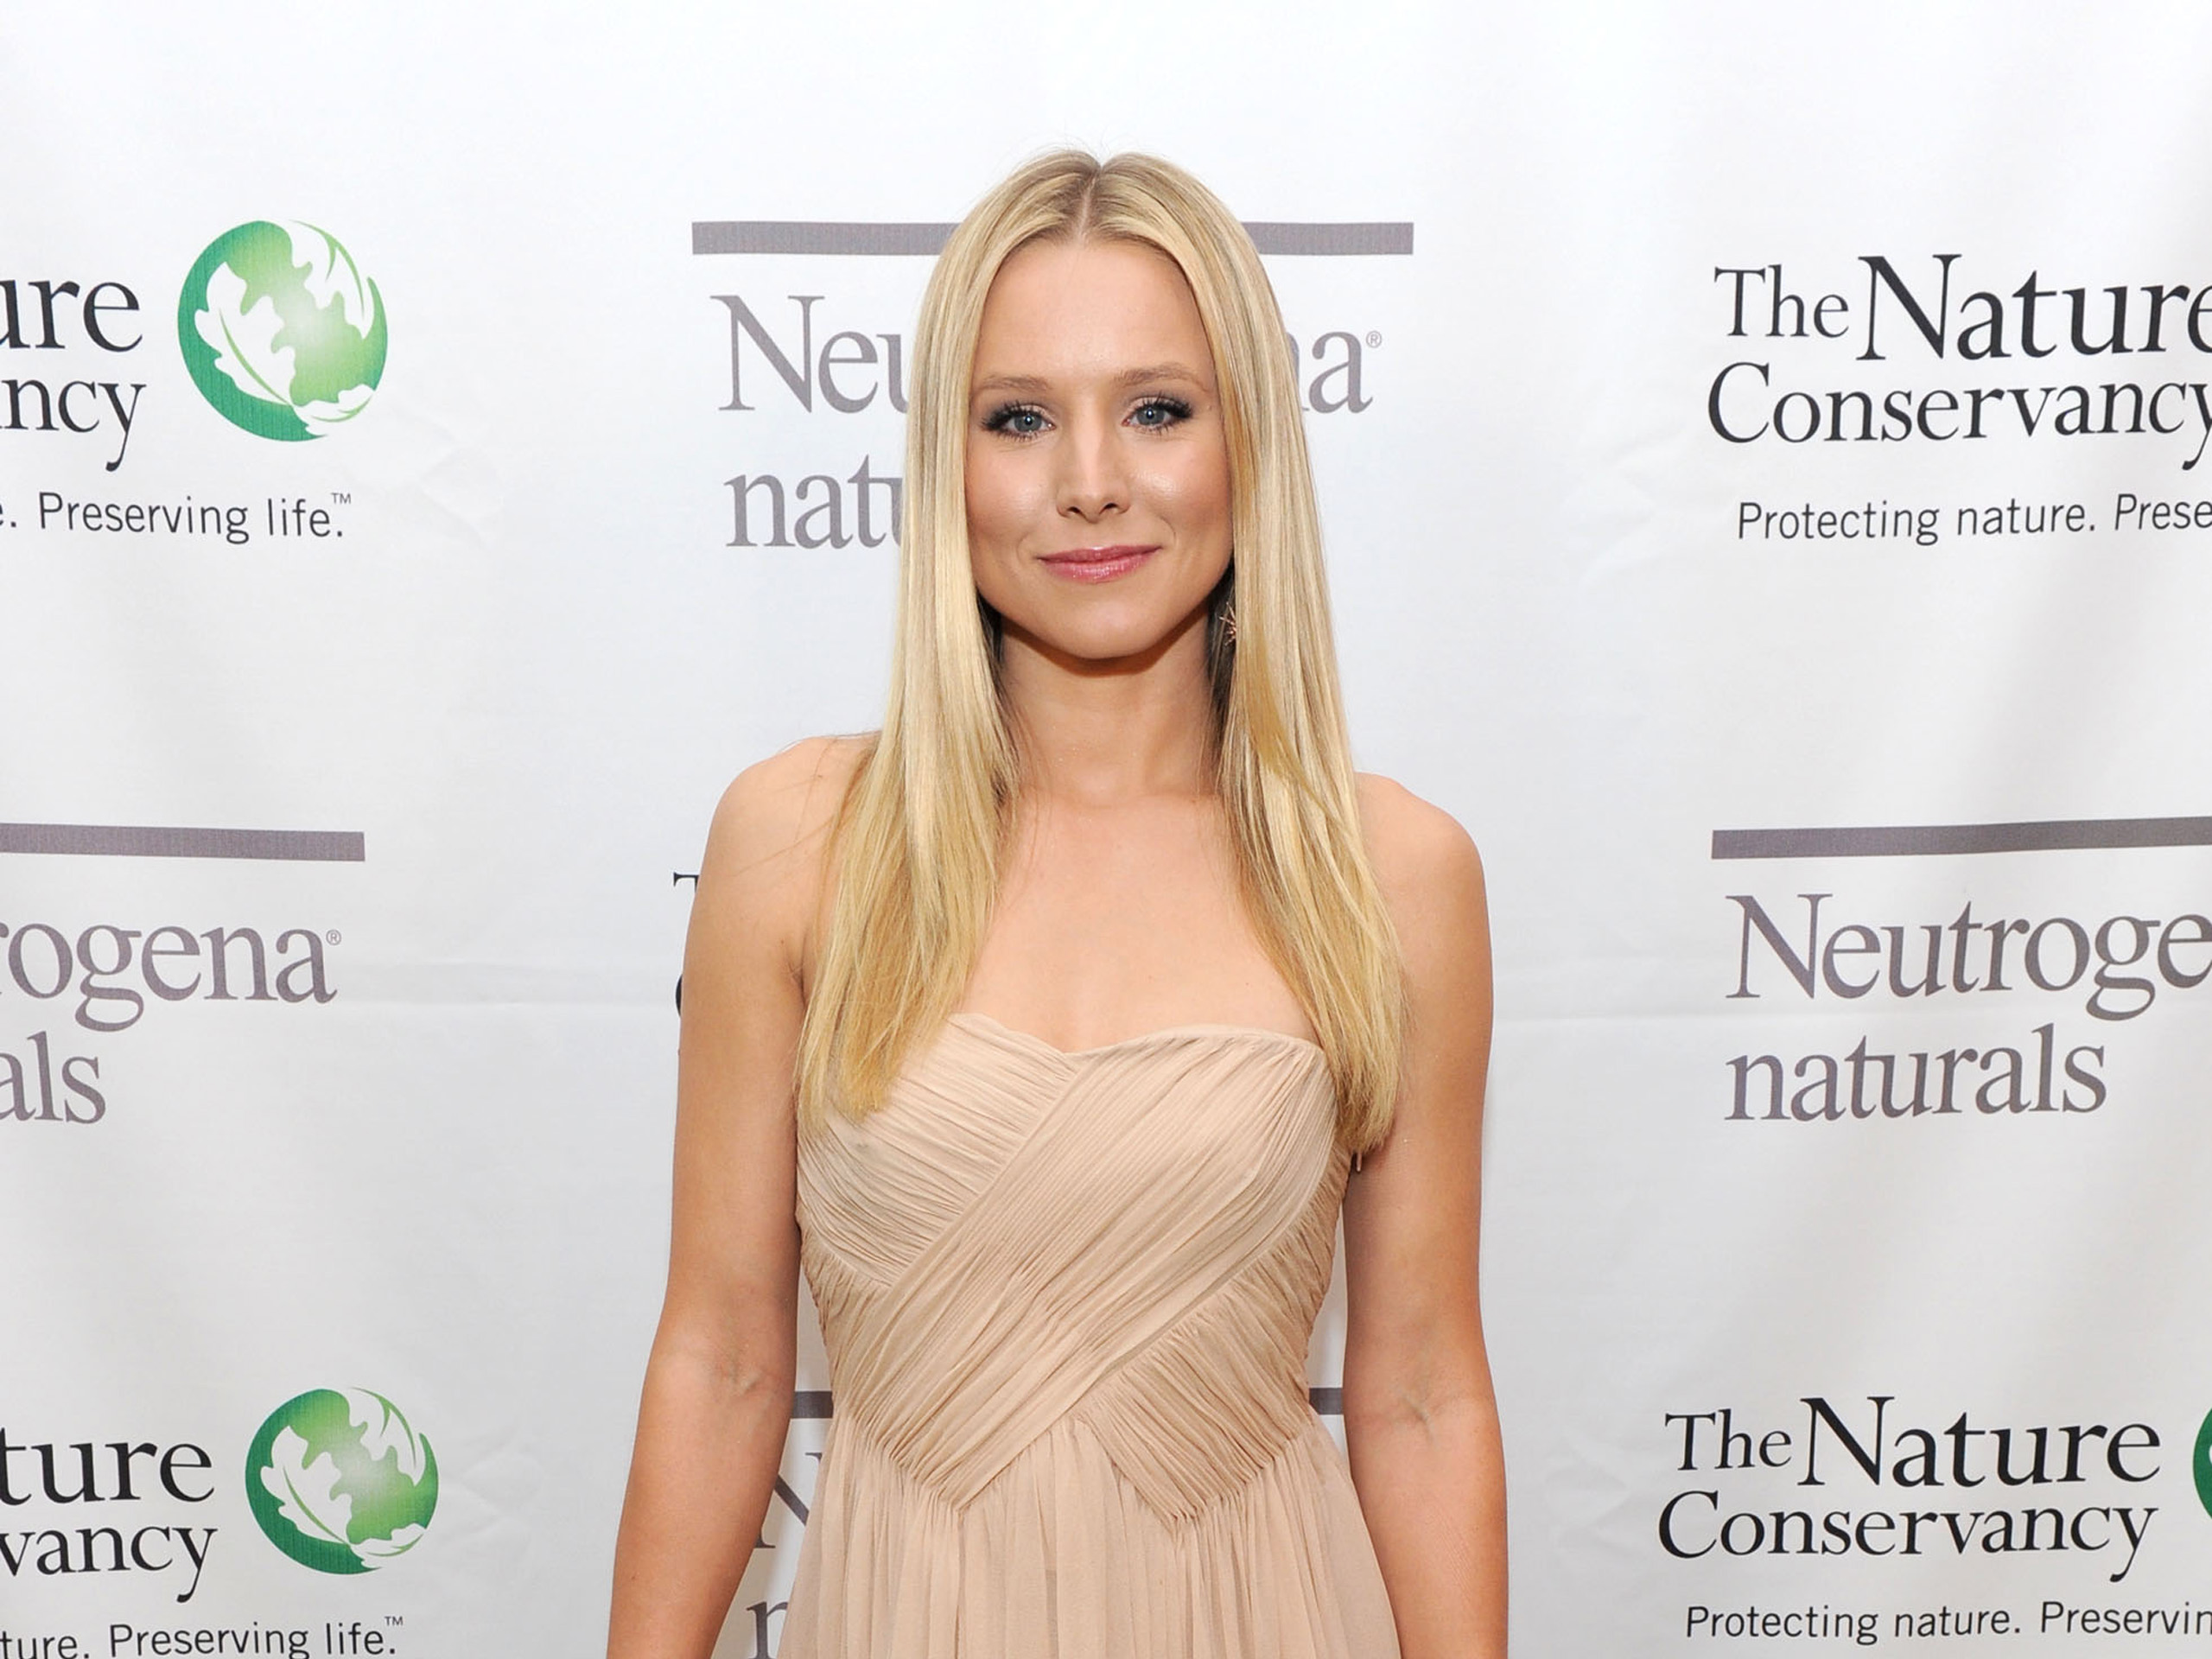 Kristen bell at nature conservancy